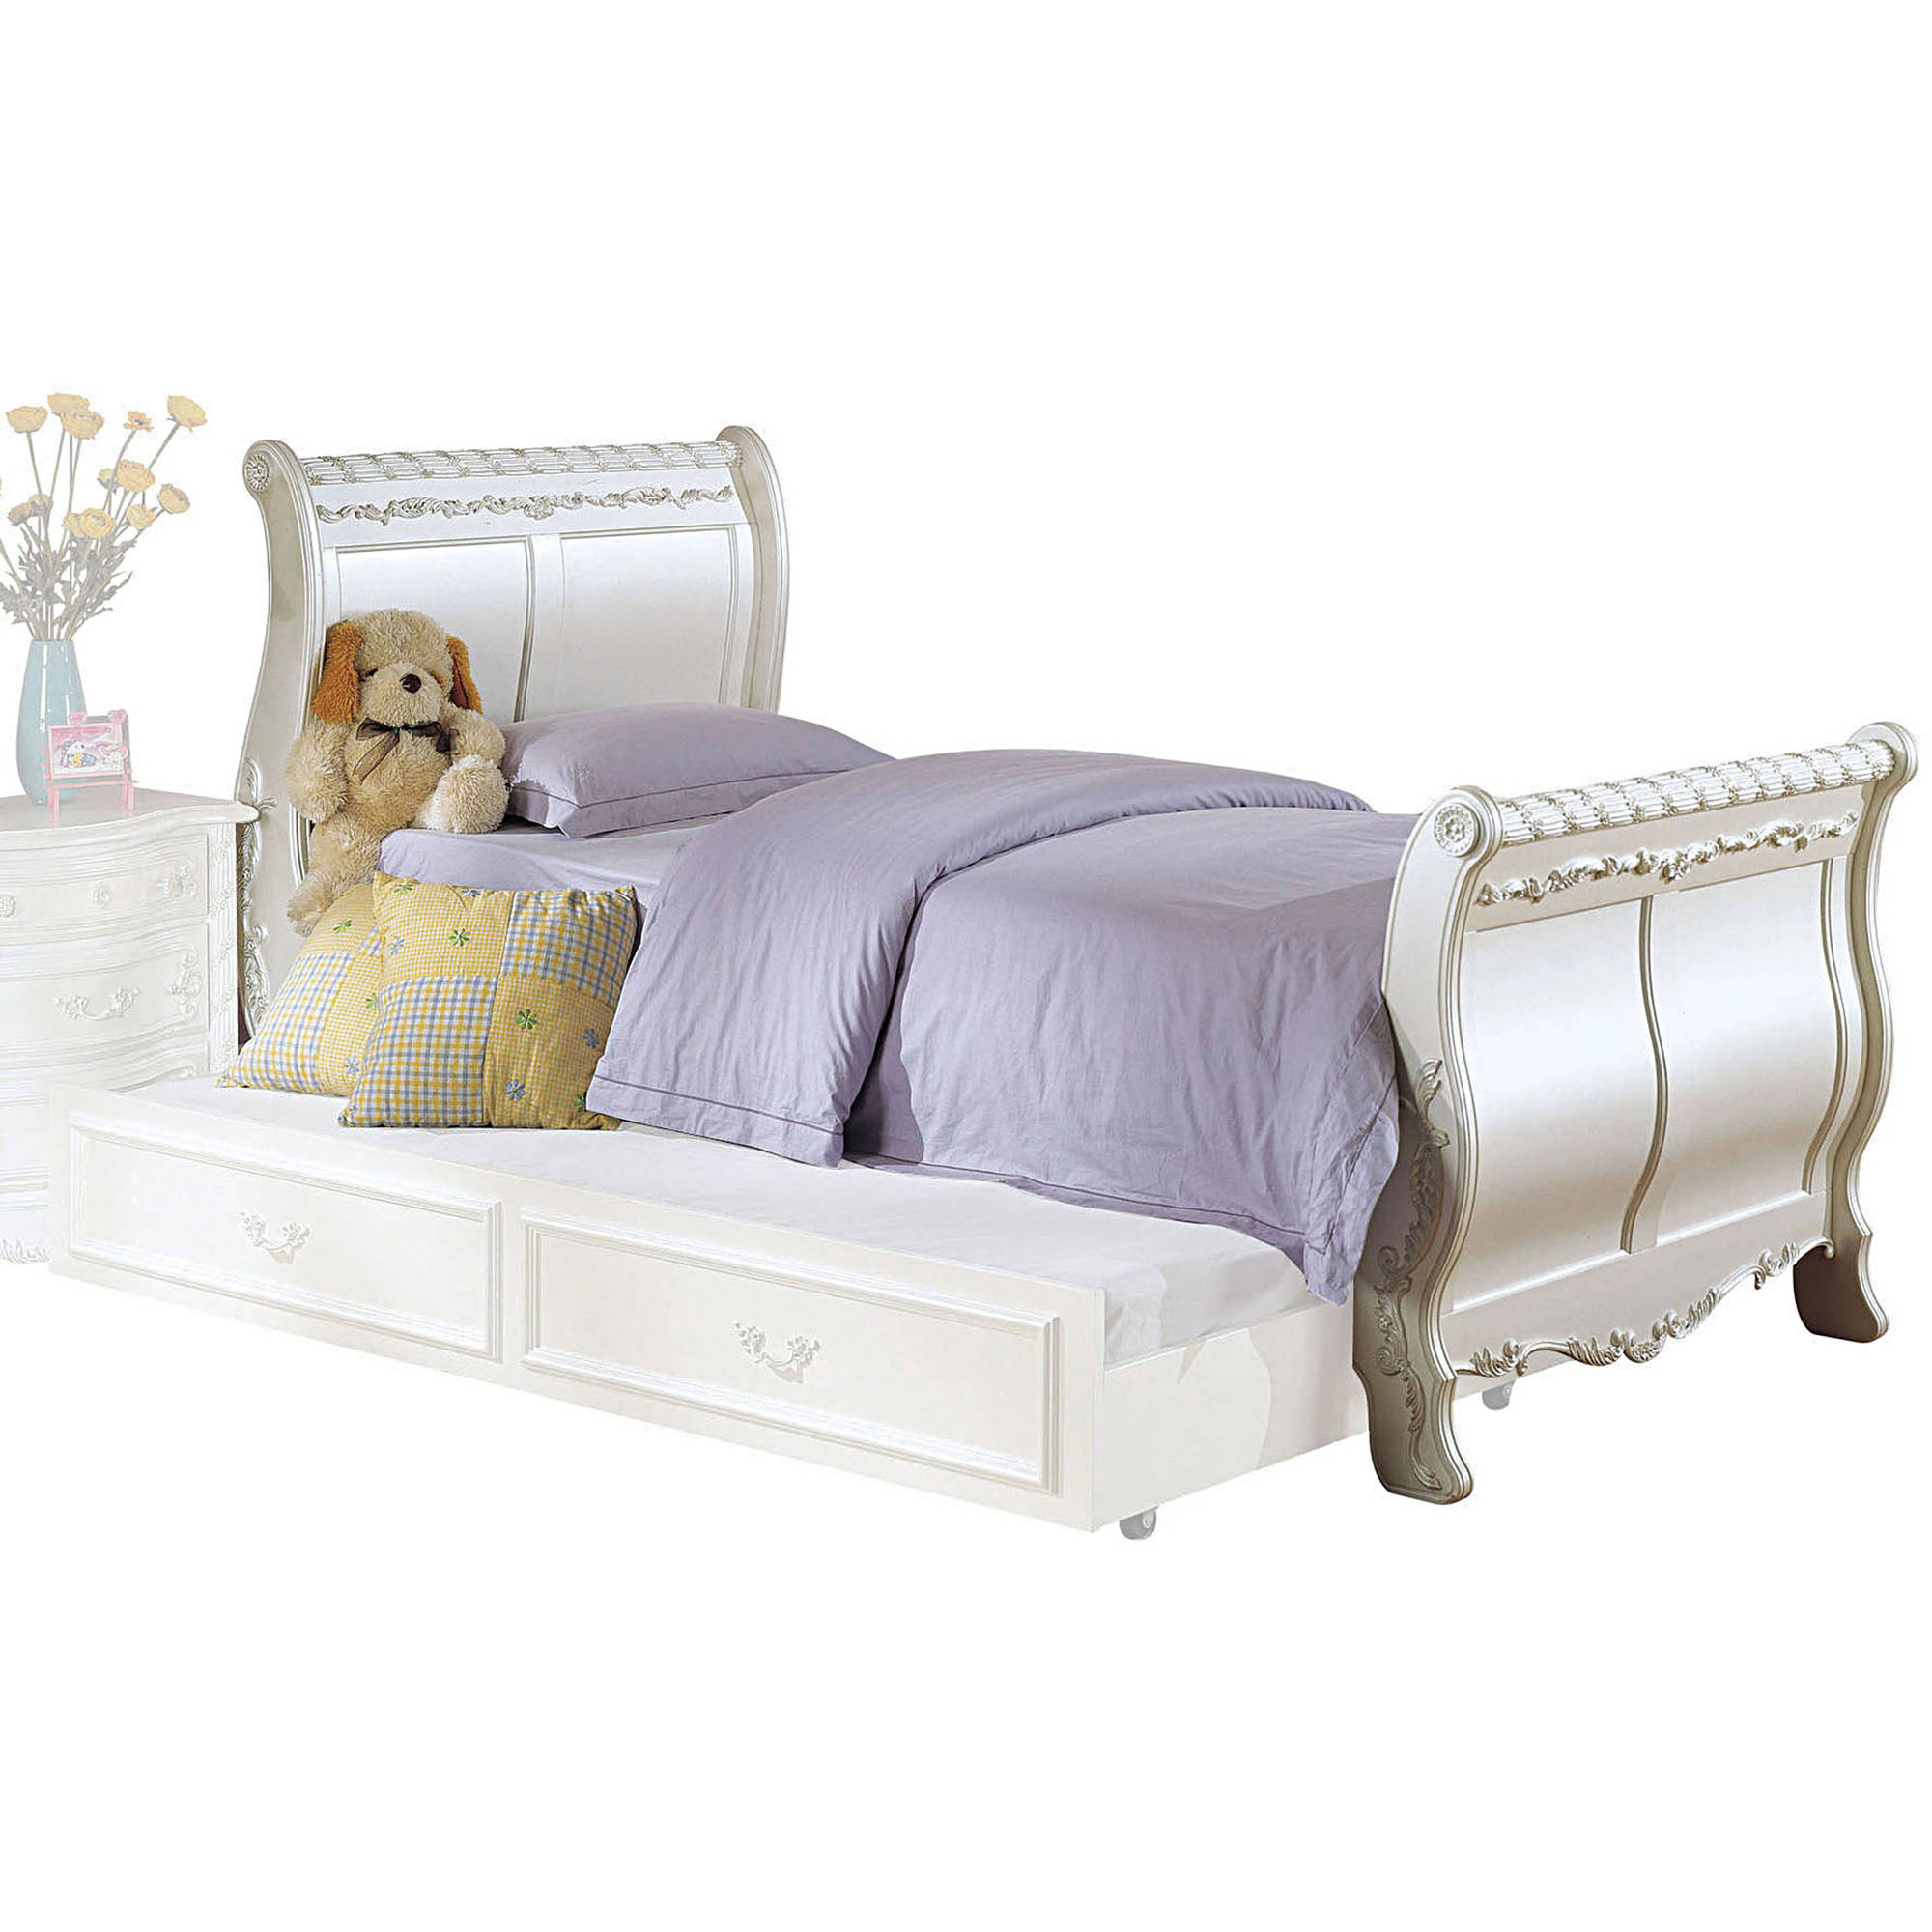 Acme Pearl Full Sleigh Bed, Pearl White and Gold Brush Accent, Box 2 of 3 by